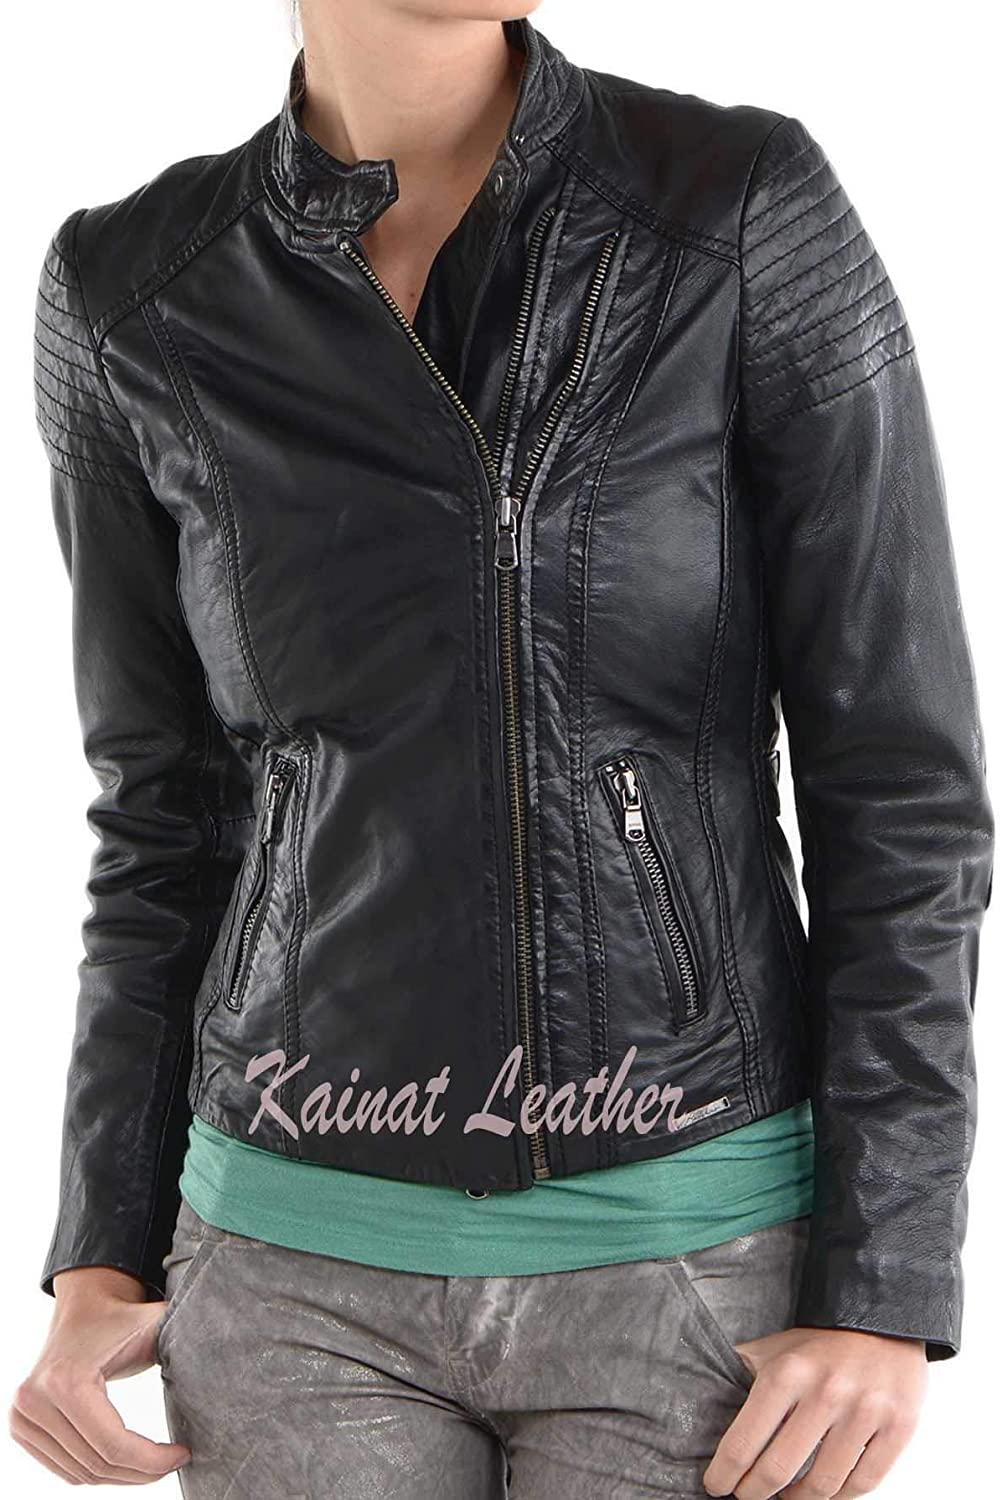 KAINAT Lambskin Leather Craft Women's Biker Jacket 119